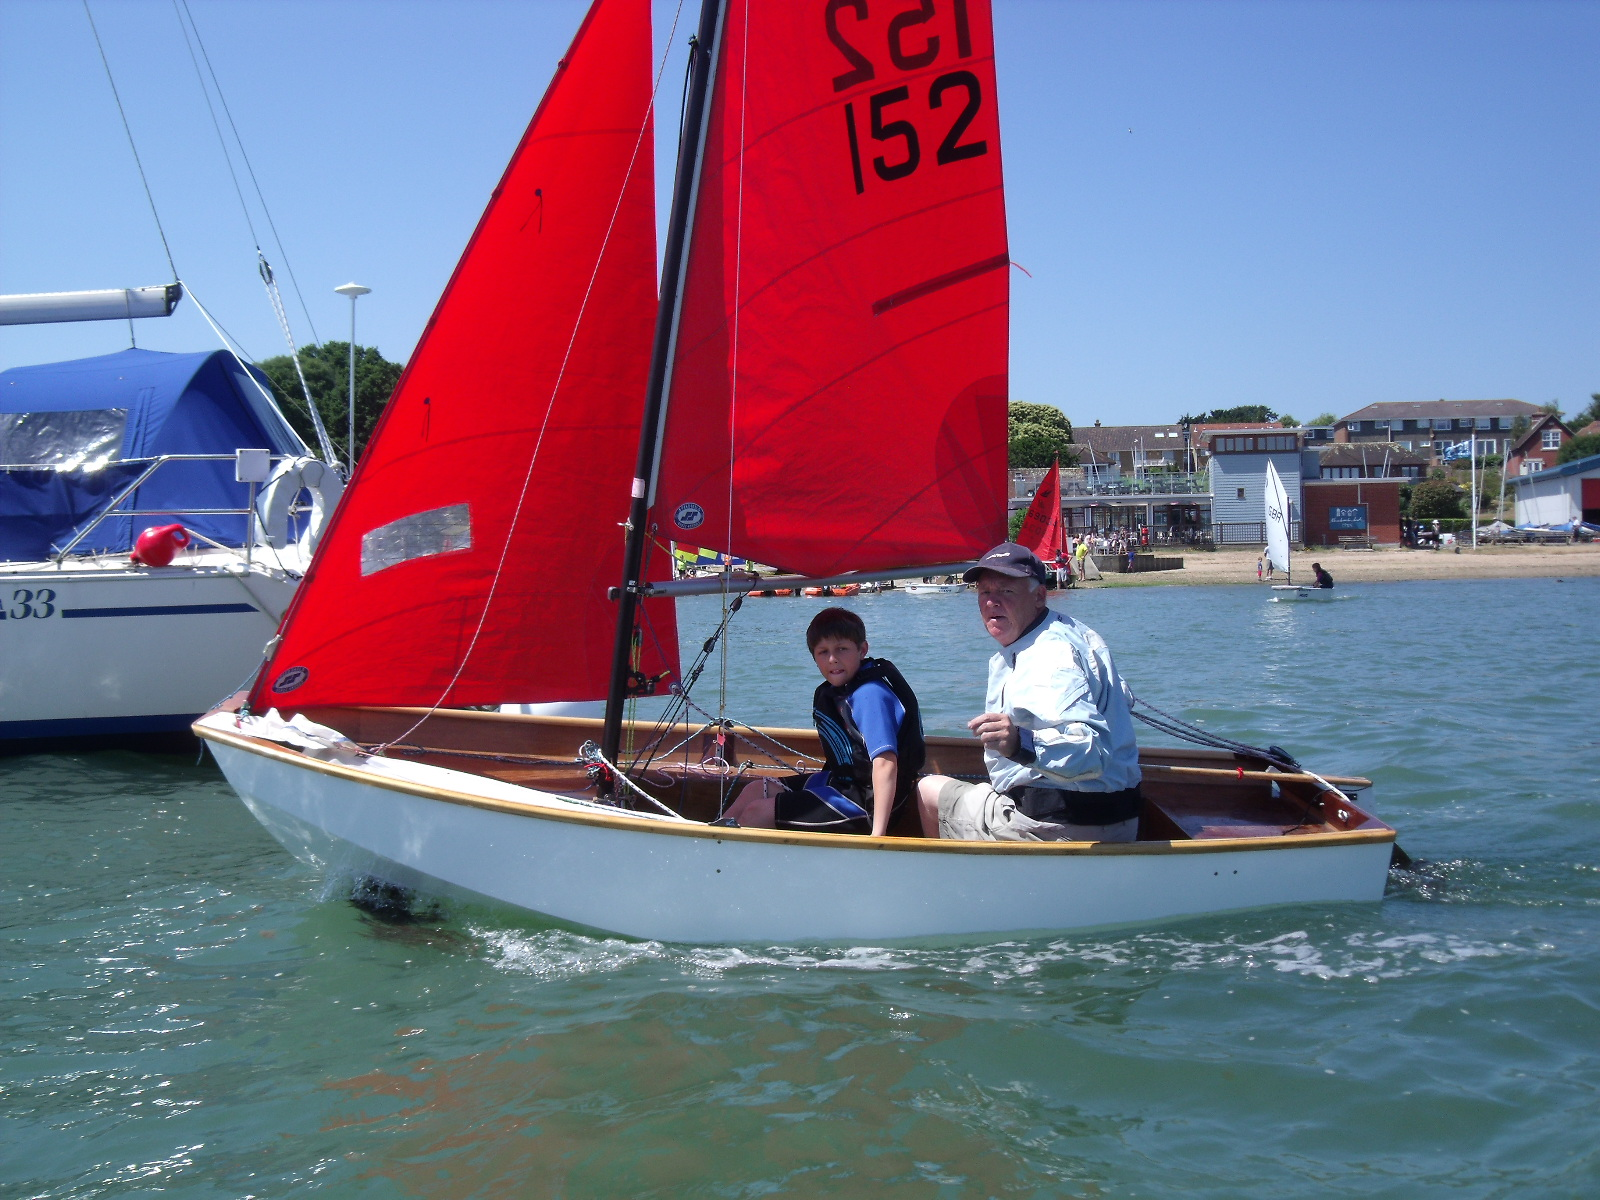 A very old, but buitifully restored Mirror dinghy sailing on a sunny day with a moored yacht in the background